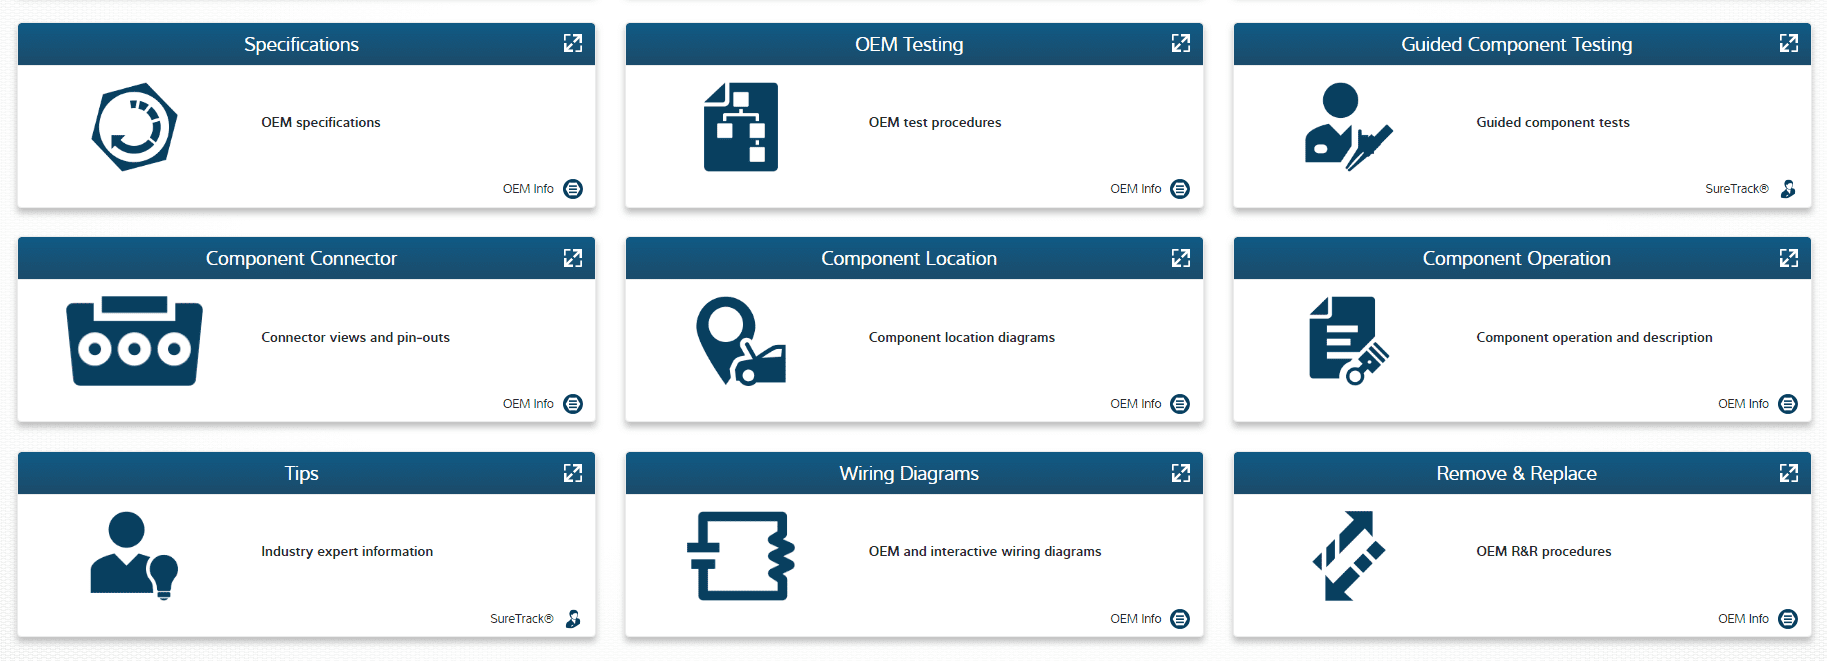 1Search Plus new screen/user interface - graphical cards